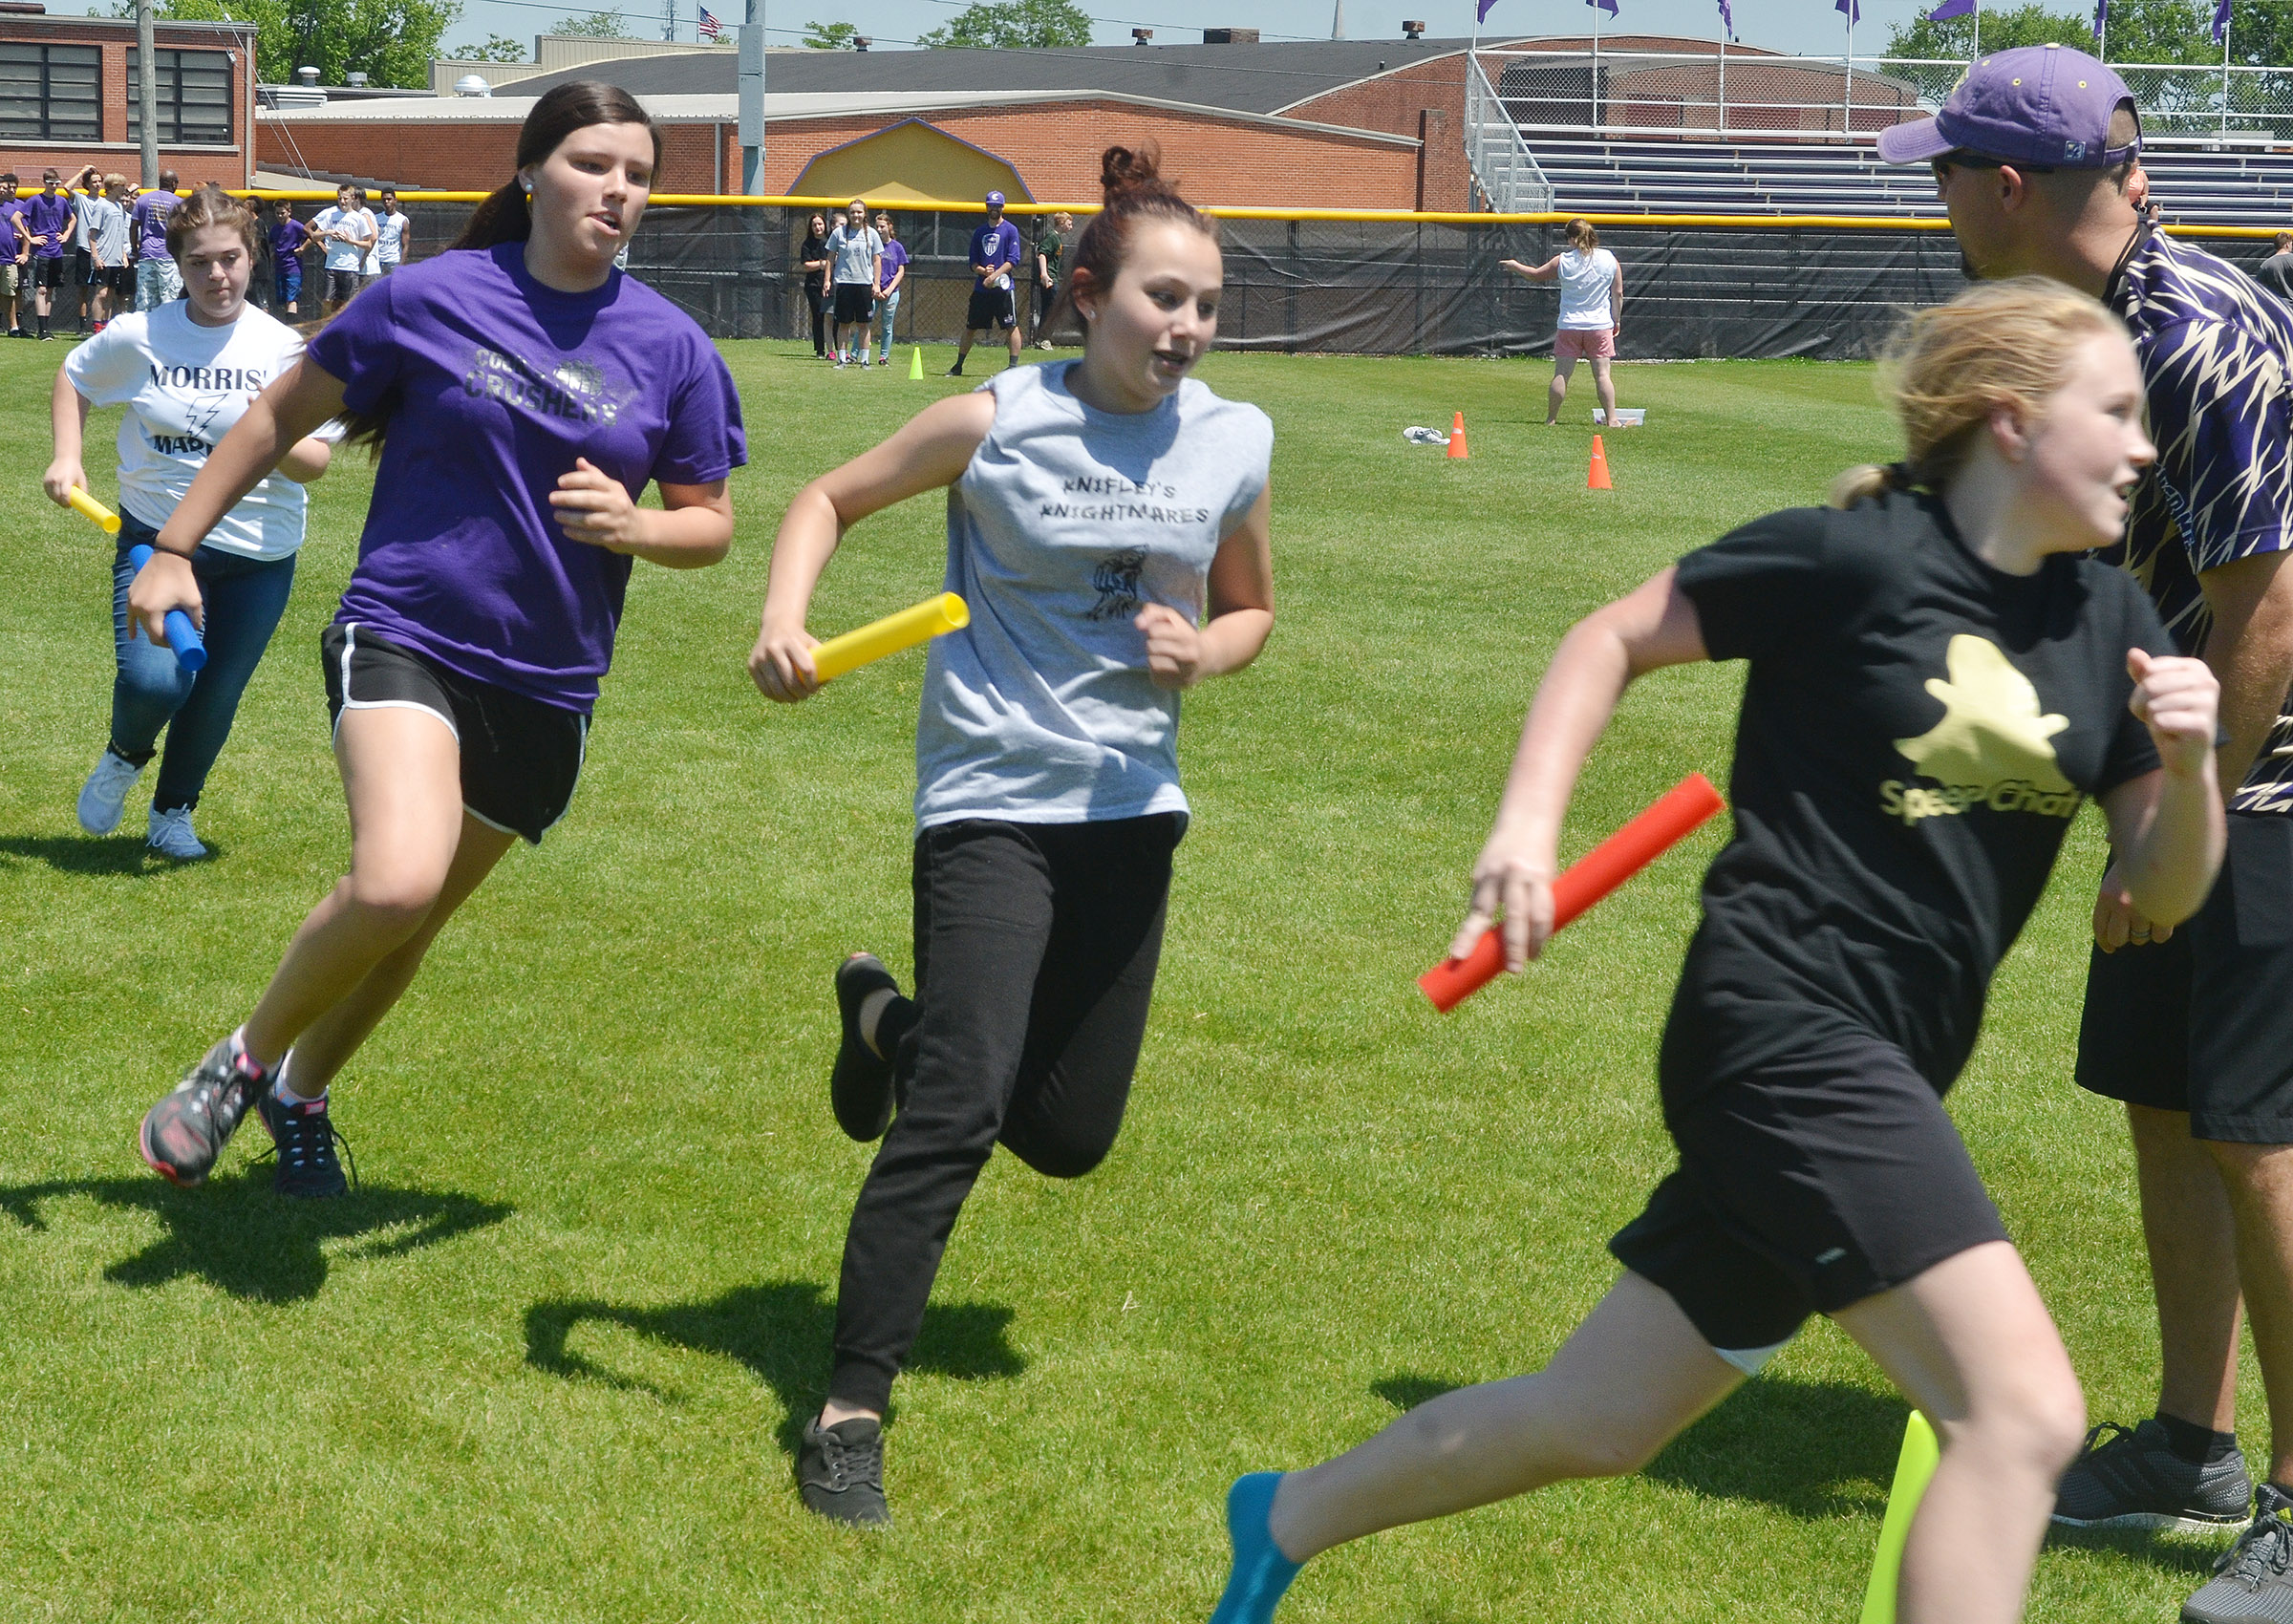 CMS eighth-graders, from left, Chloe Garrett, Hannah Keith, Victoria Garcia and Alanna Atwood run in the 4x4 relay race.